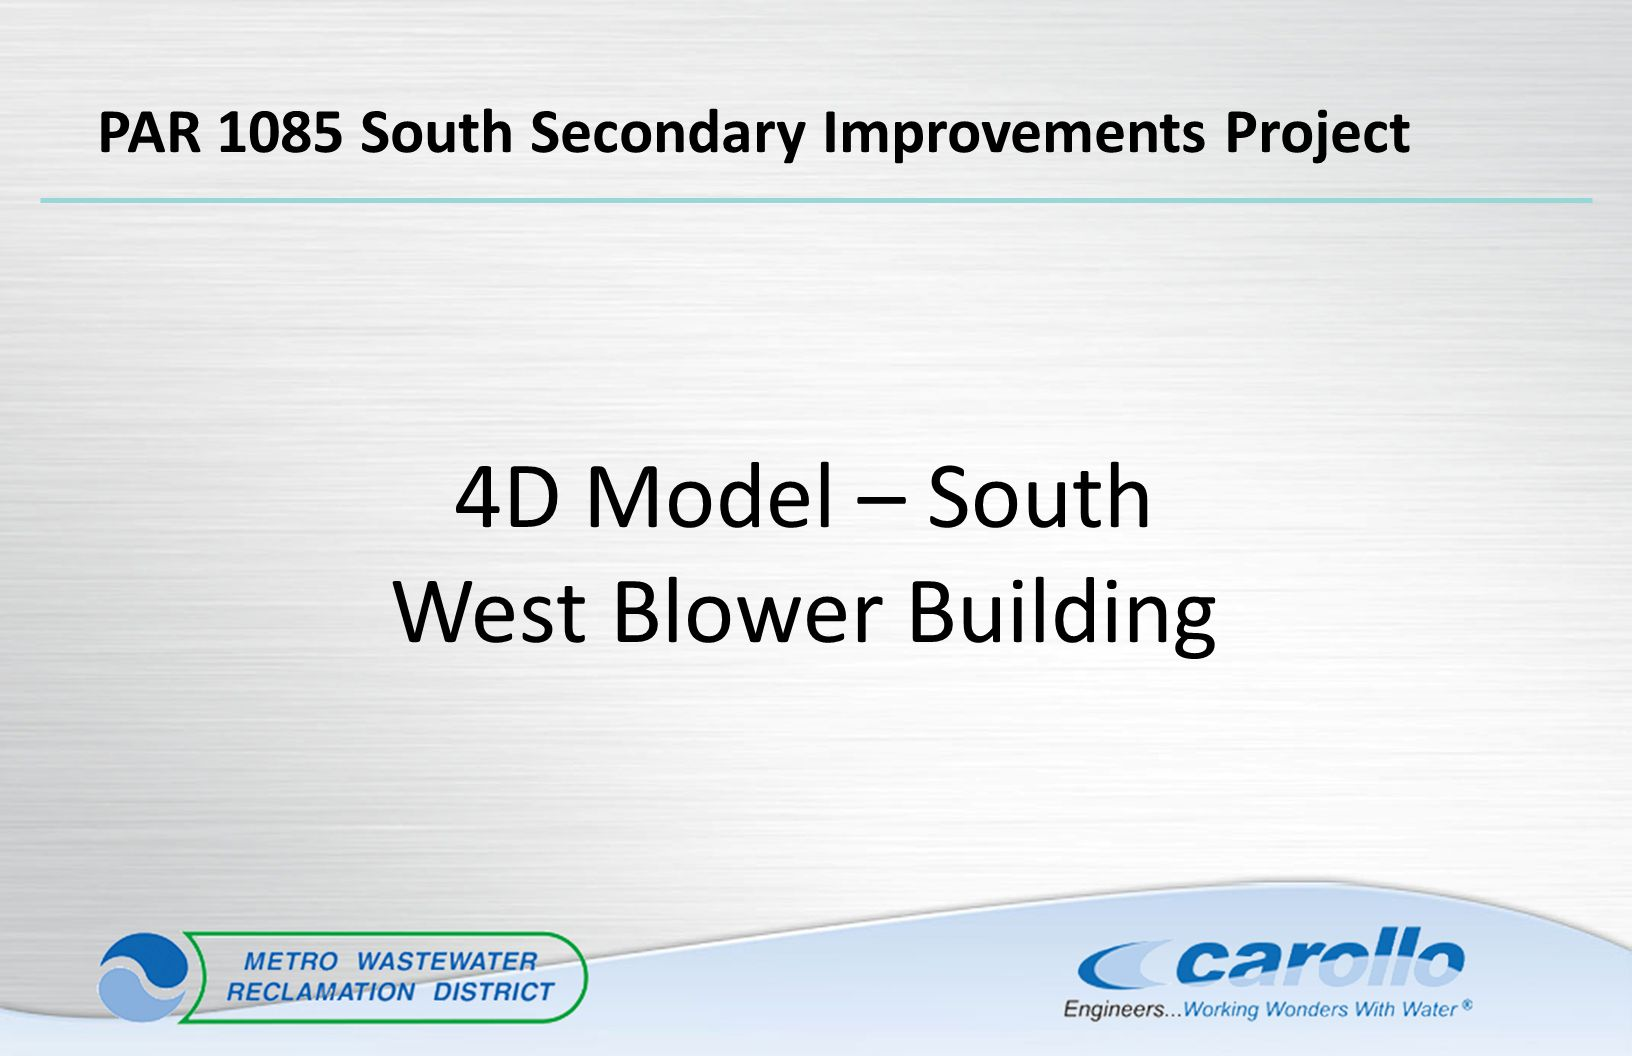 4D Model – South West Blower Building PAR 1085 South Secondary Improvements Project